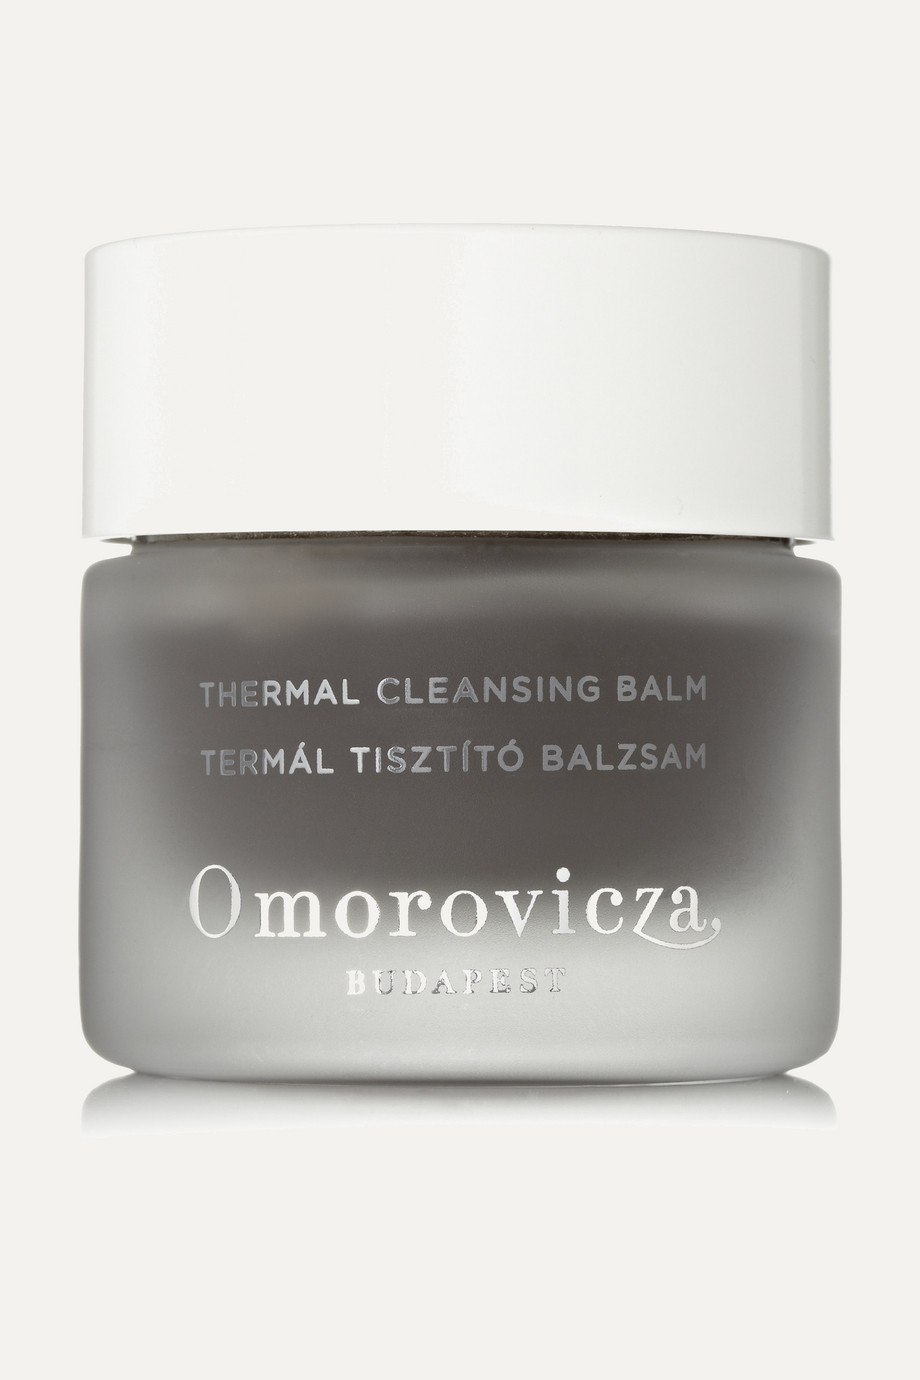 Omorovicza Thermal Cleansing Balm, 50 ml – Reinigungsbalsam